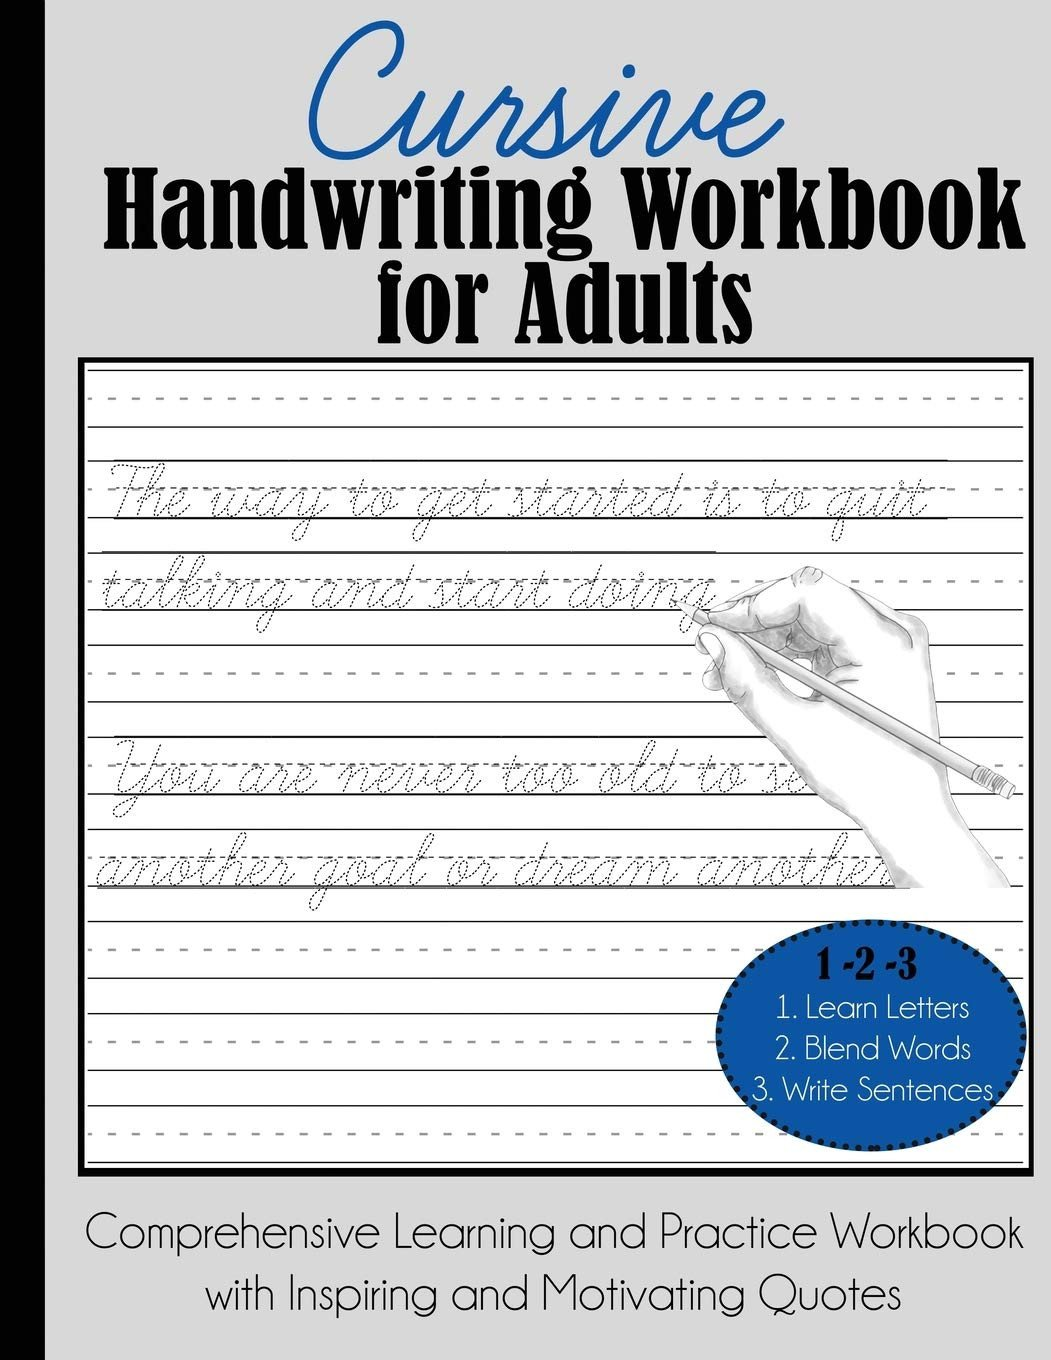 cursive handwriting workbook for adults prehensive learning practice sheets free printable